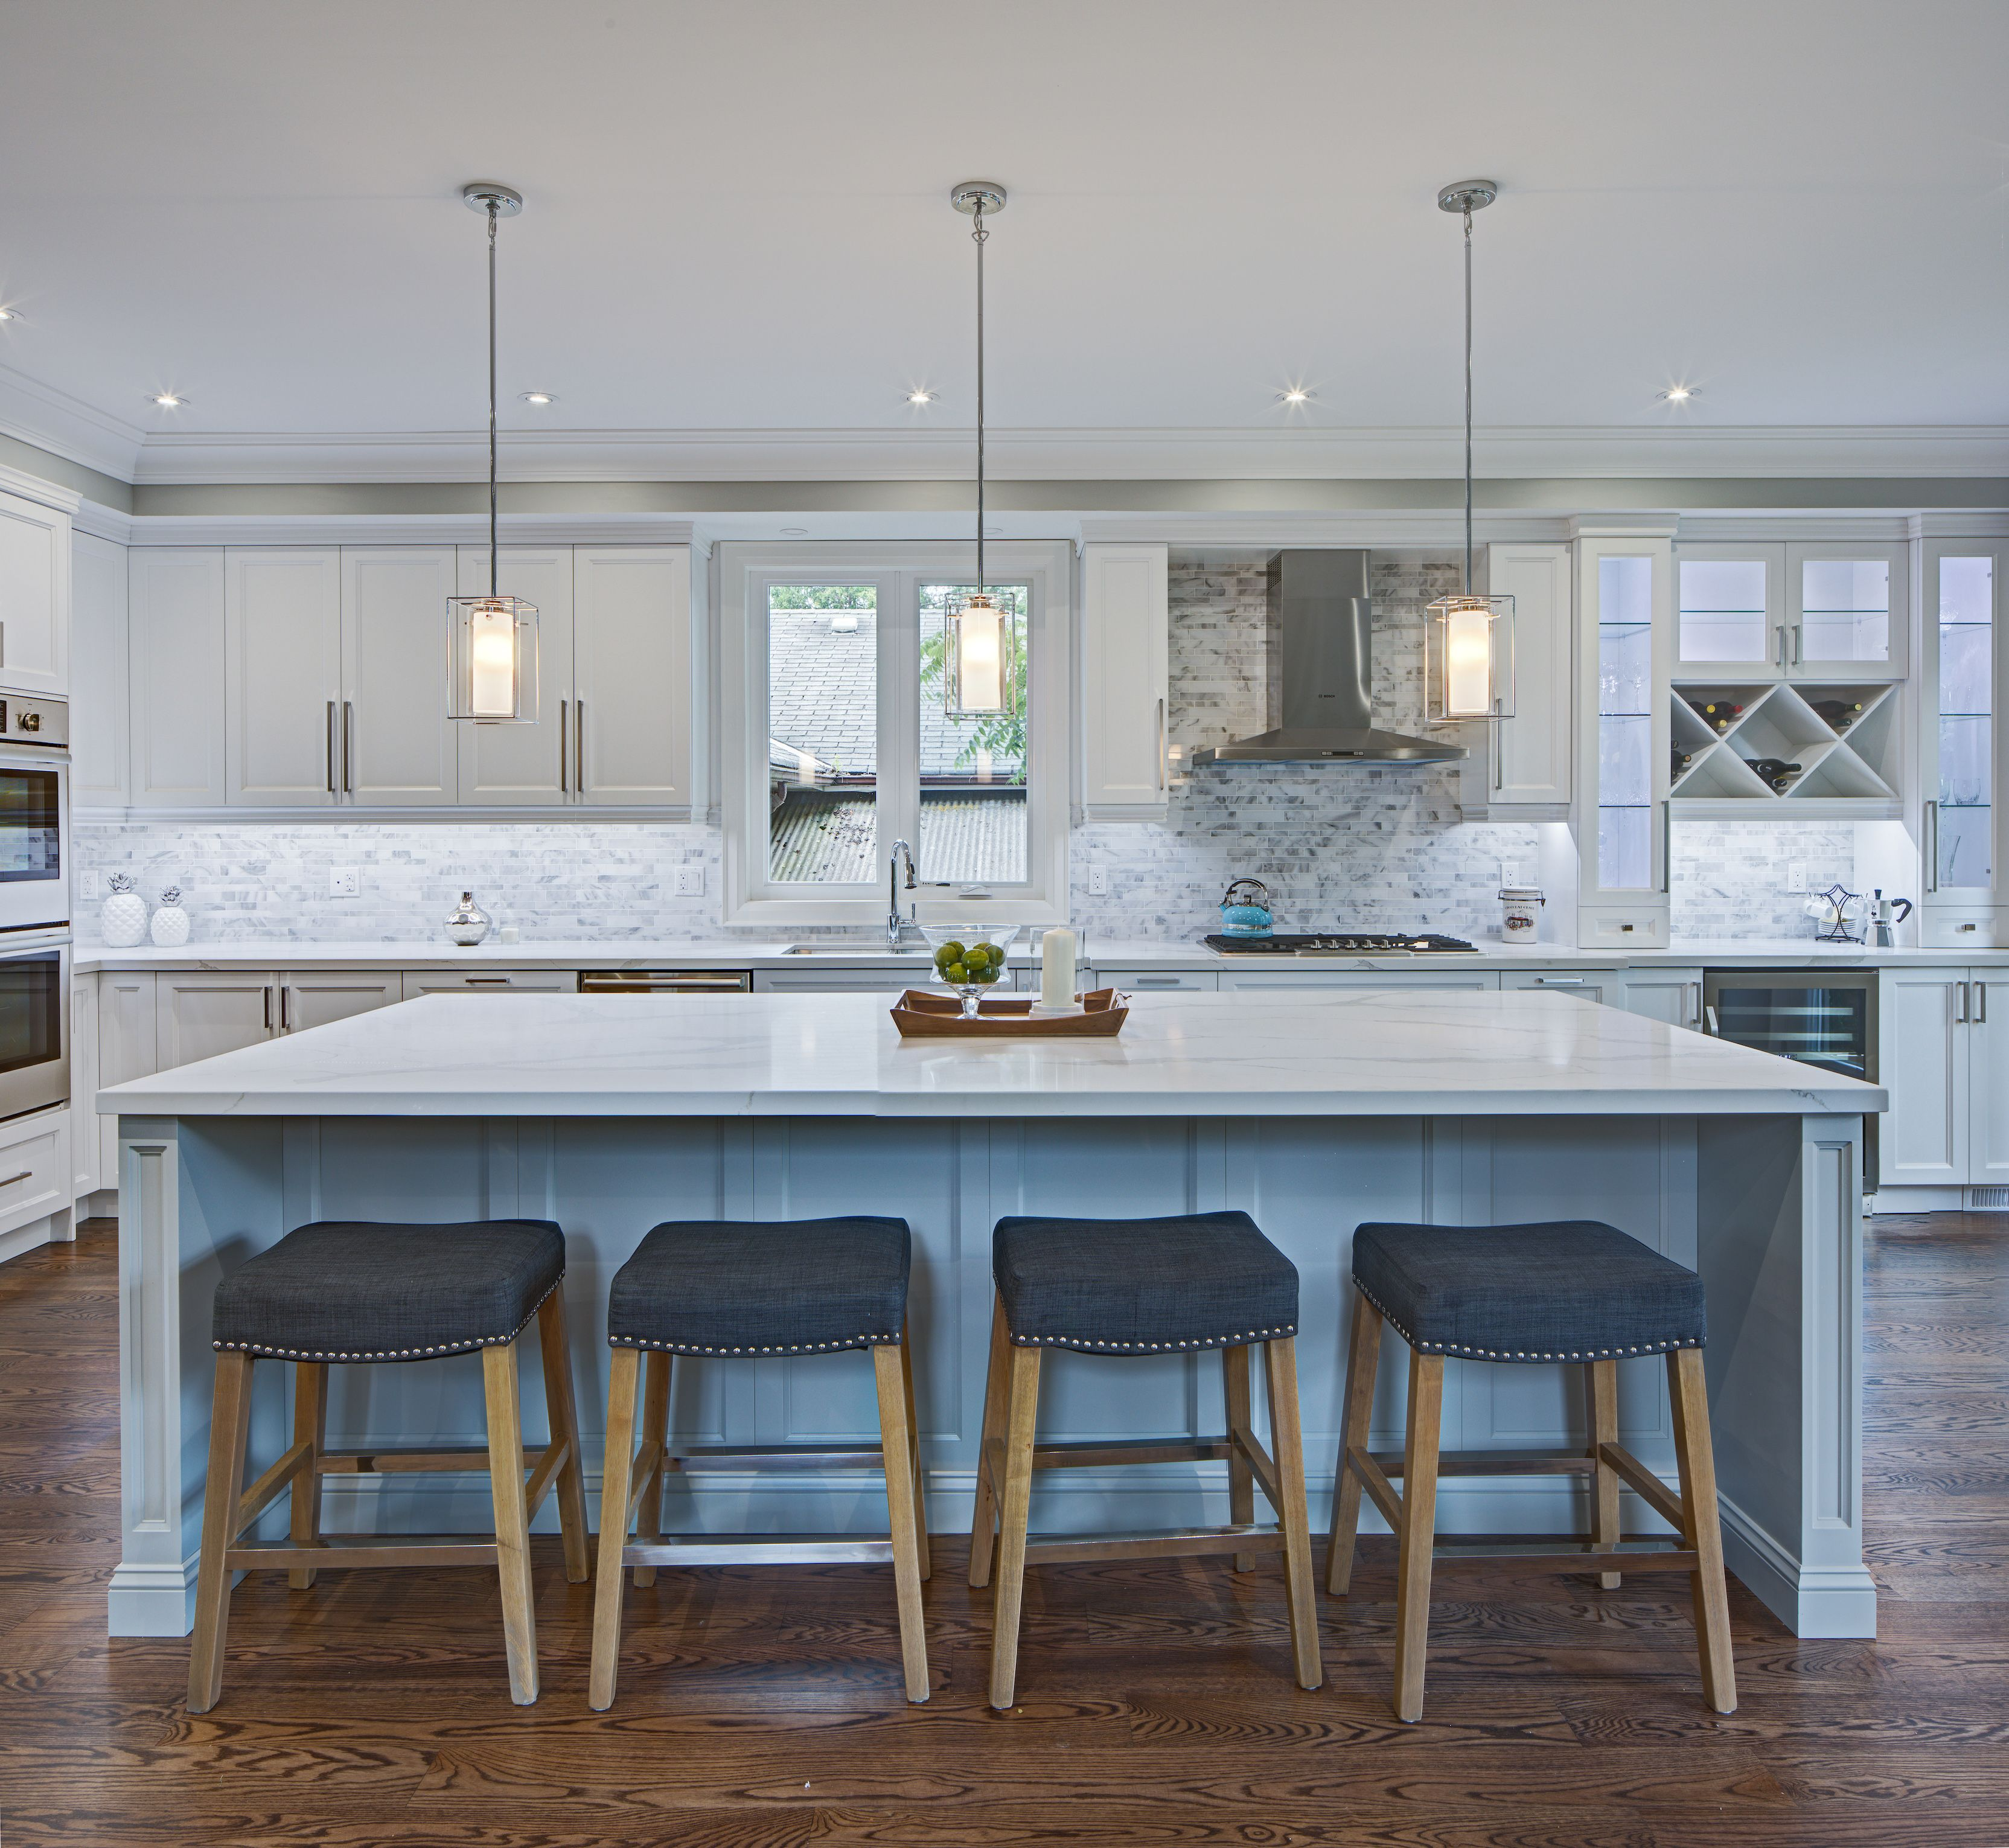 Pin by Lucvaa Kitchens on Traditional Kitchens by Lucvaa Kitchens ...